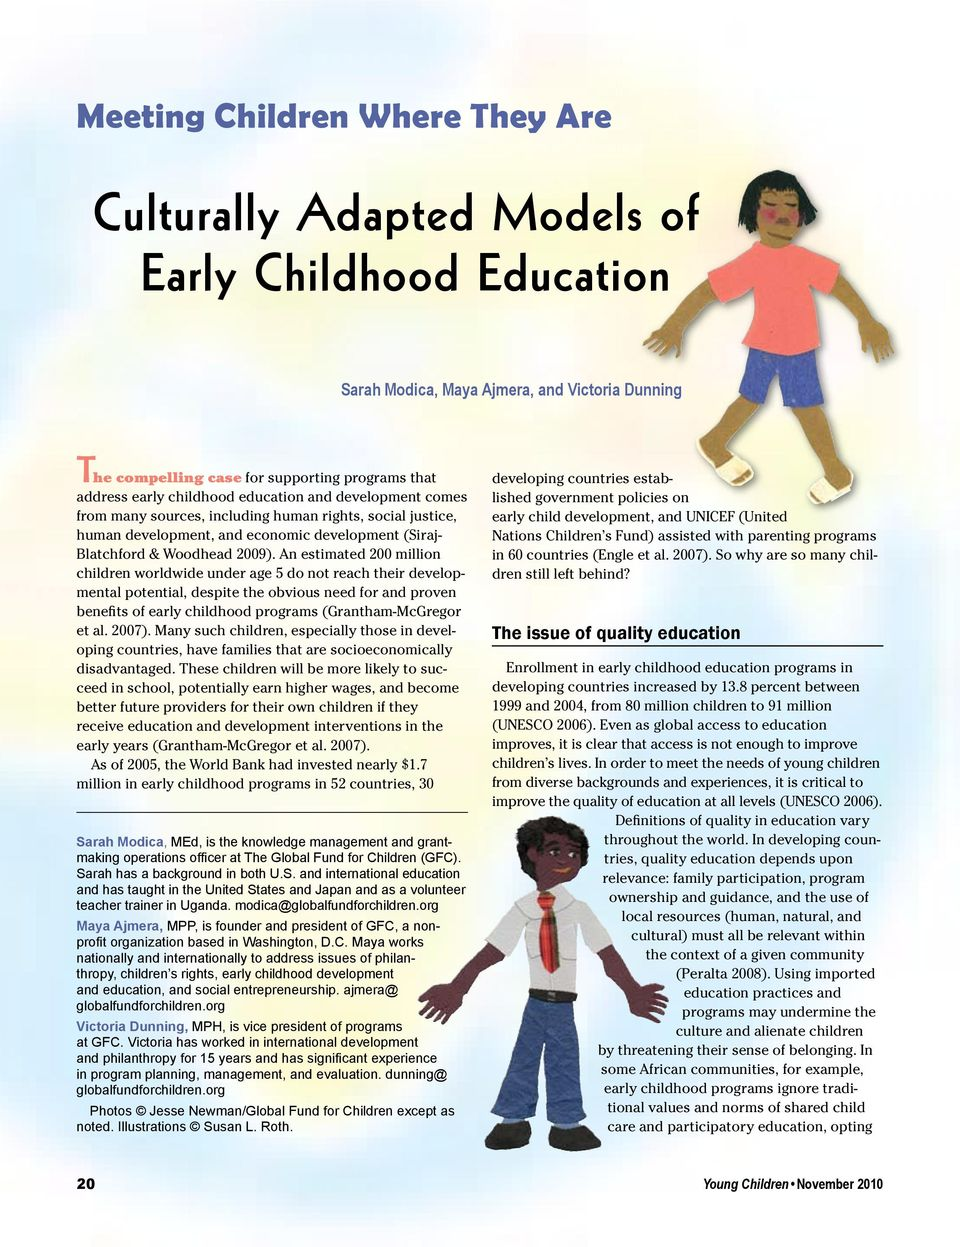 An estimated 200 million children worldwide under age 5 do not reach their developmental potential, despite the obvious need for and proven benefits of early childhood programs (Grantham-McGregor et